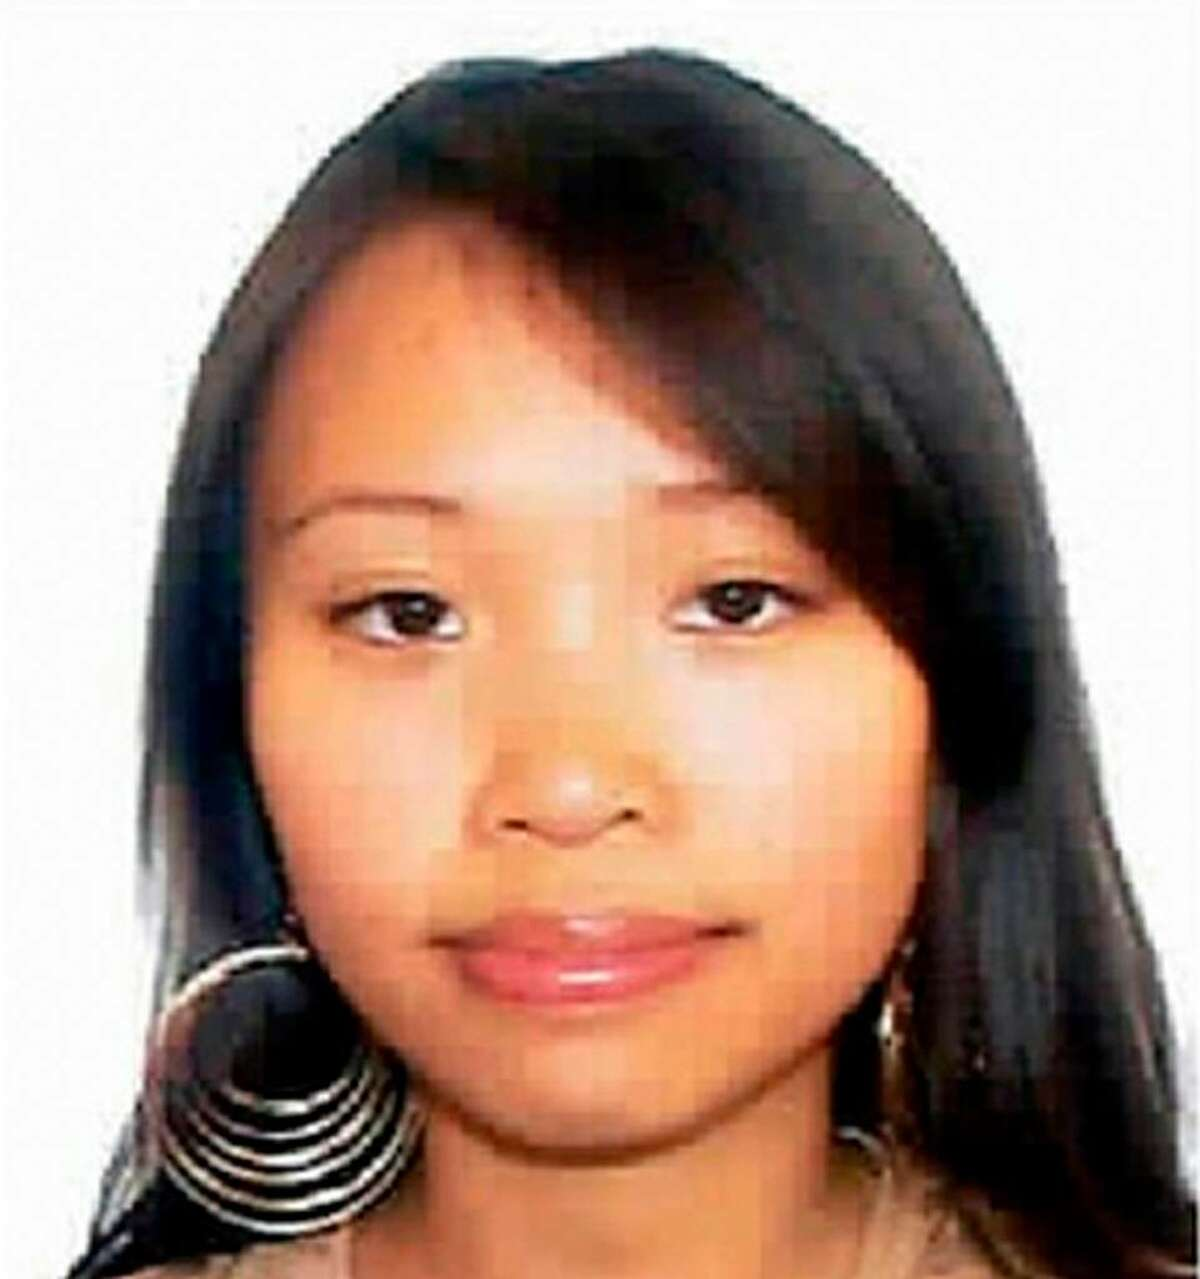 This composite photo release by New Haven Police Dept., shows Yale graduate student Annie Le in a video image entering 10 Amistad the morning of her disappearance on the campus at Yale University in new haven, Conn. Sept. 8, 2009. At left is an undated of Le. Police on Sunday said they found what they believe is the body of the graduate student and bride-to-be hidden inside the wall of 10 Amistad, a university building where she was last seen. (AP Photo/New Haven Police Dept.)